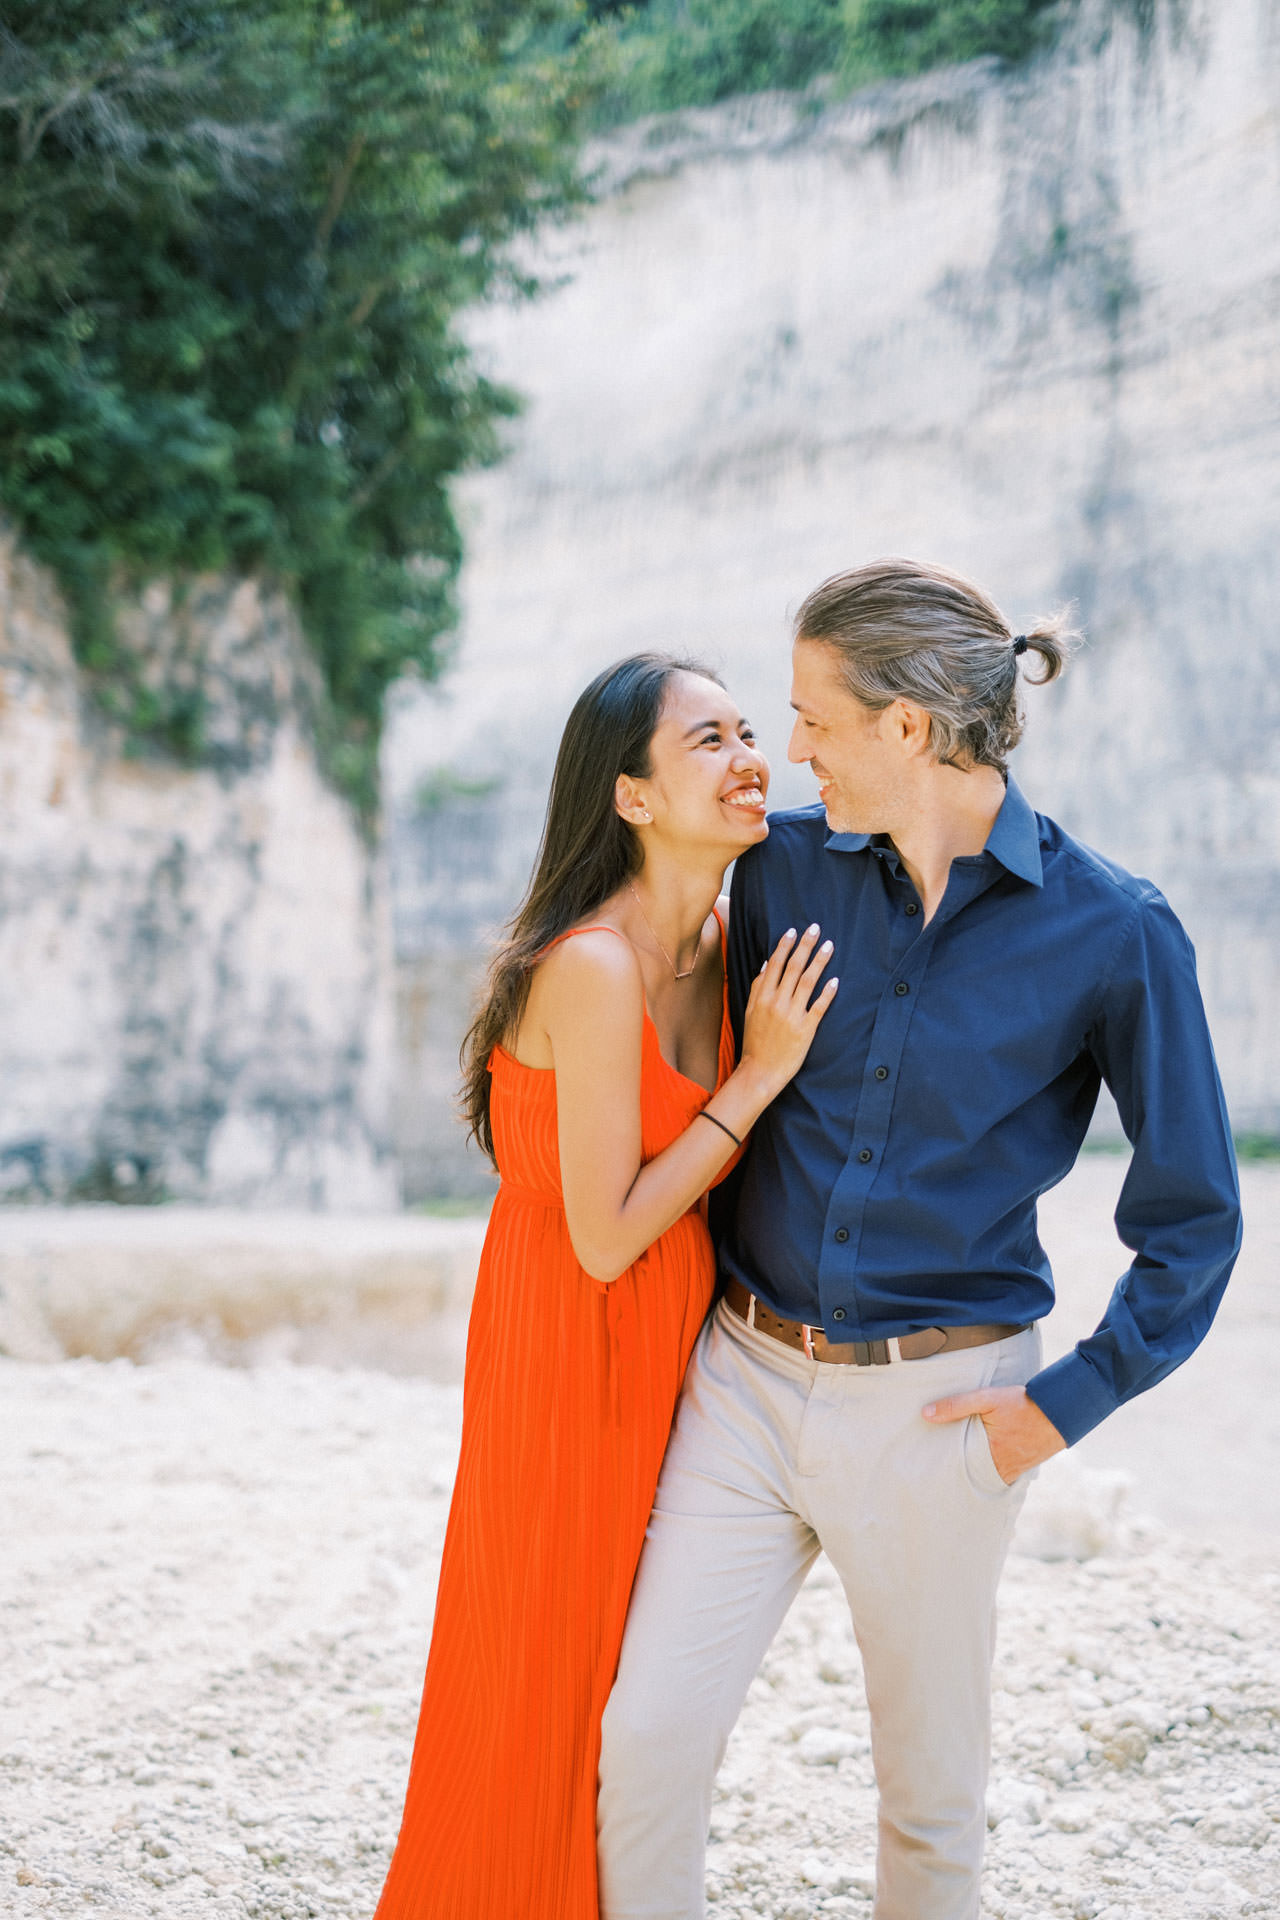 Bali's Beach Marriage Proposal with a Proposal Video! 15